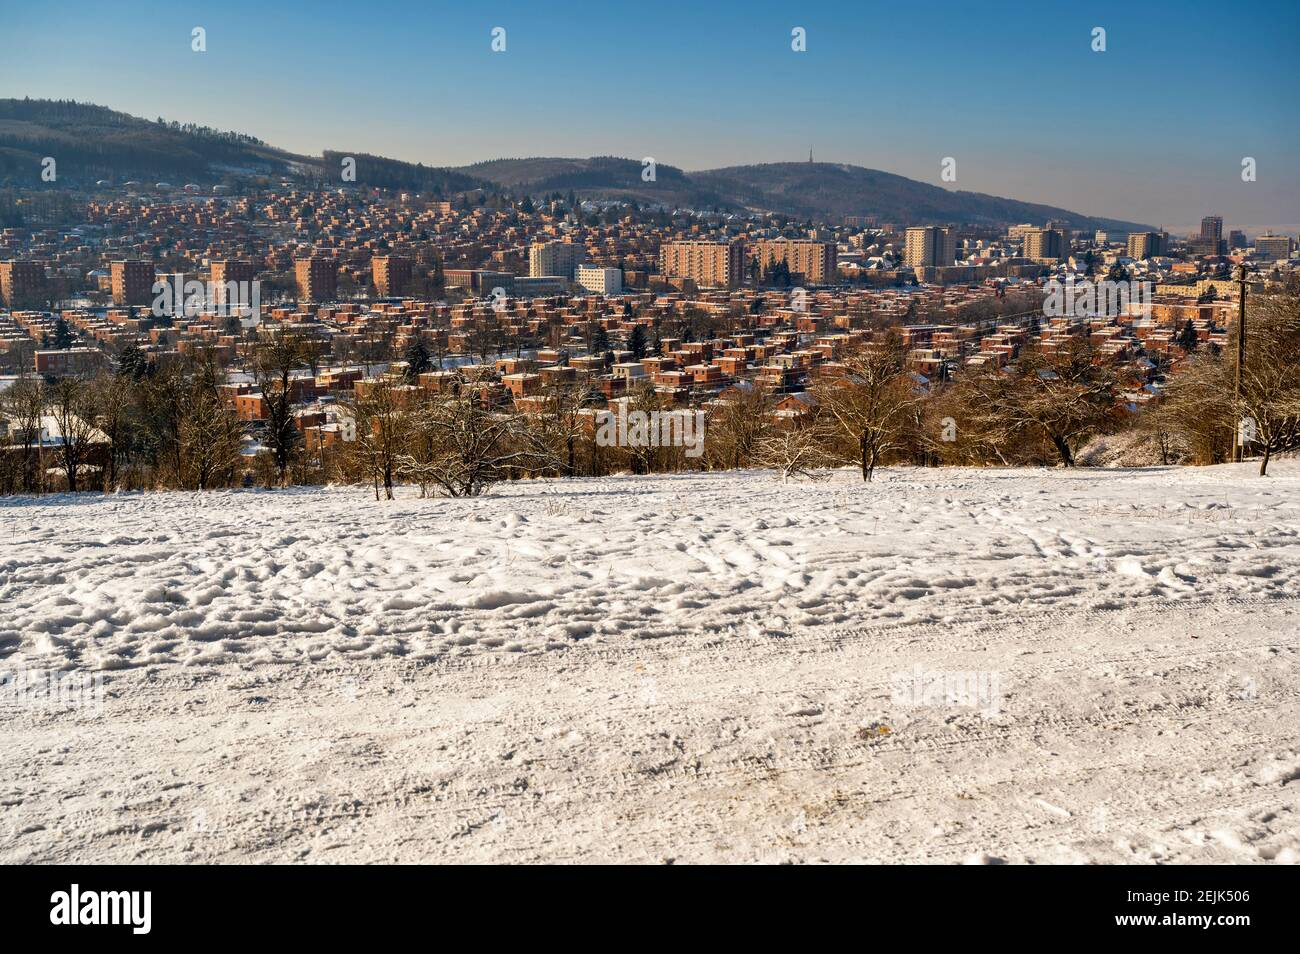 Residential area, unique architecture of standardized red brick houses in city Zlin,Czech republic. Snowy city panorama, sunny winter day. Stock Photo